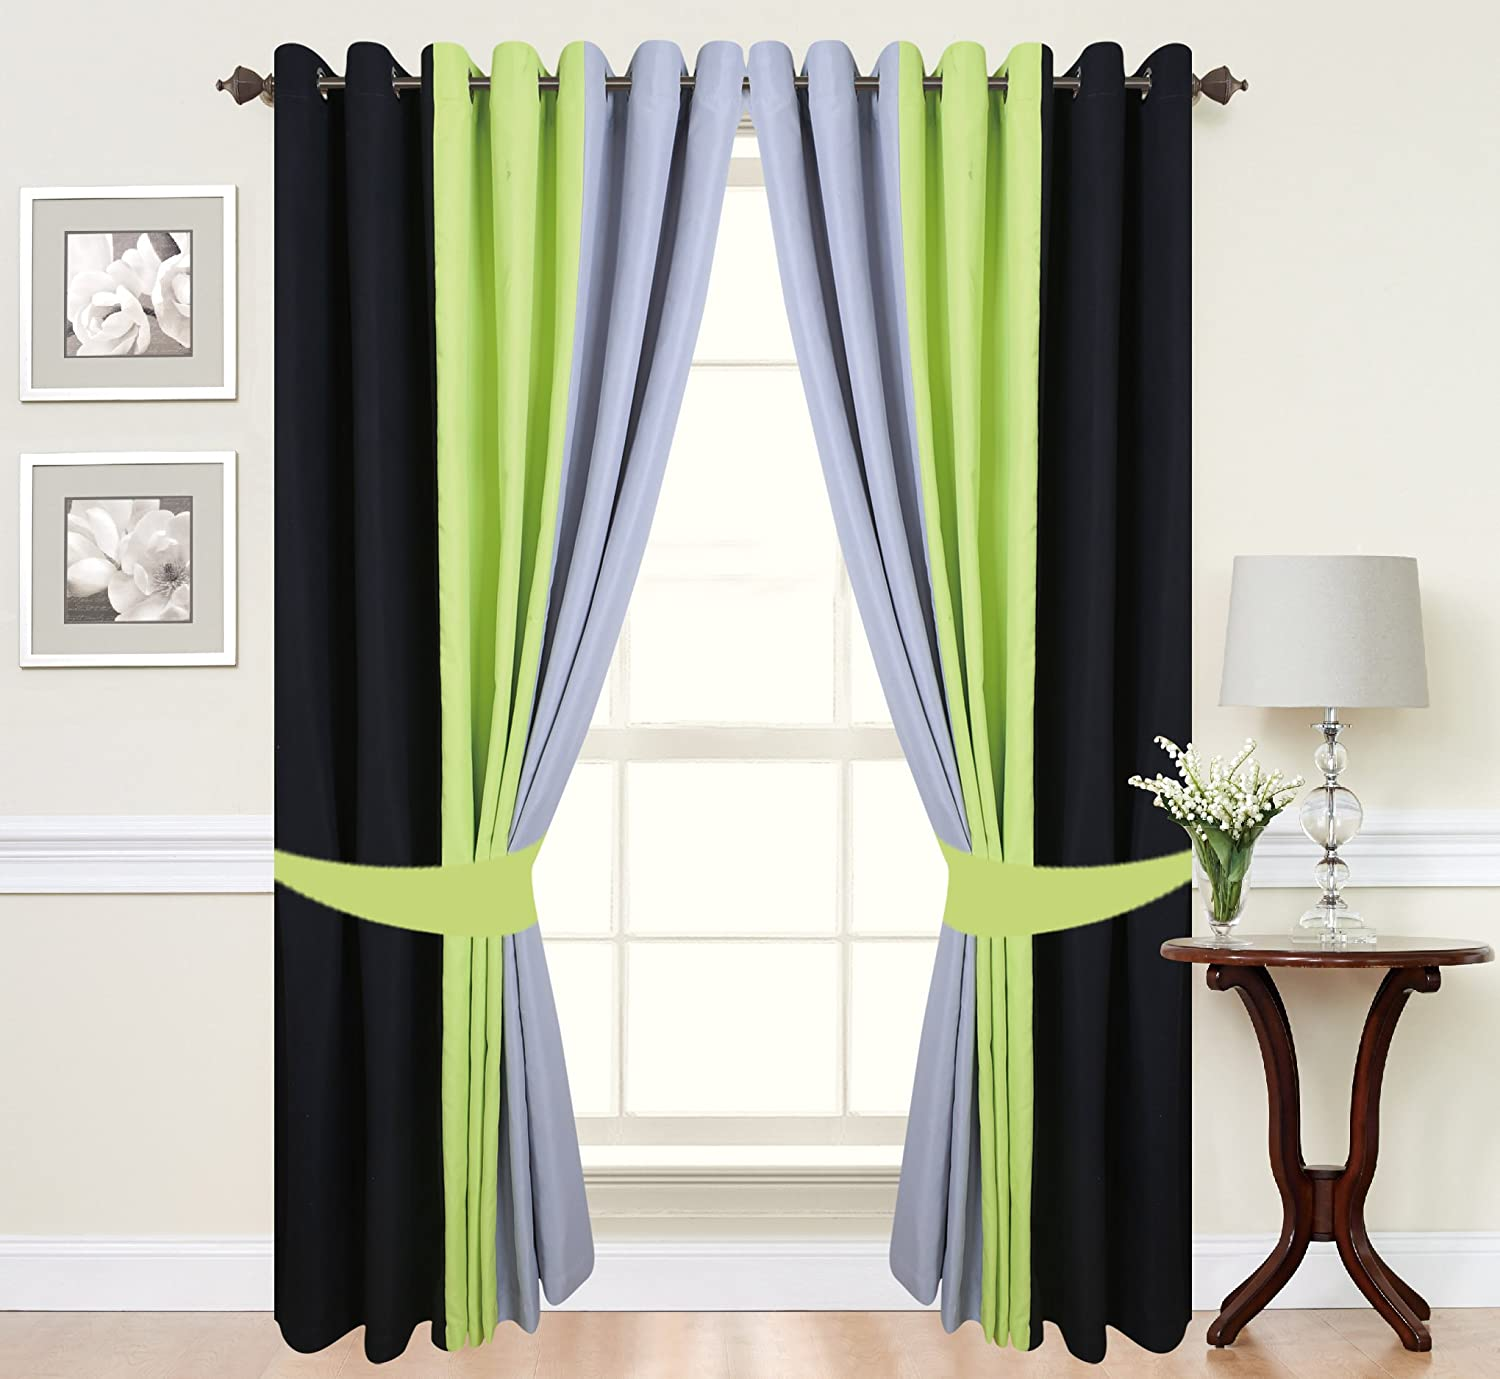 Pair Of Tone Fully Lined Ring Top Eyelet Curtains In Lime Green